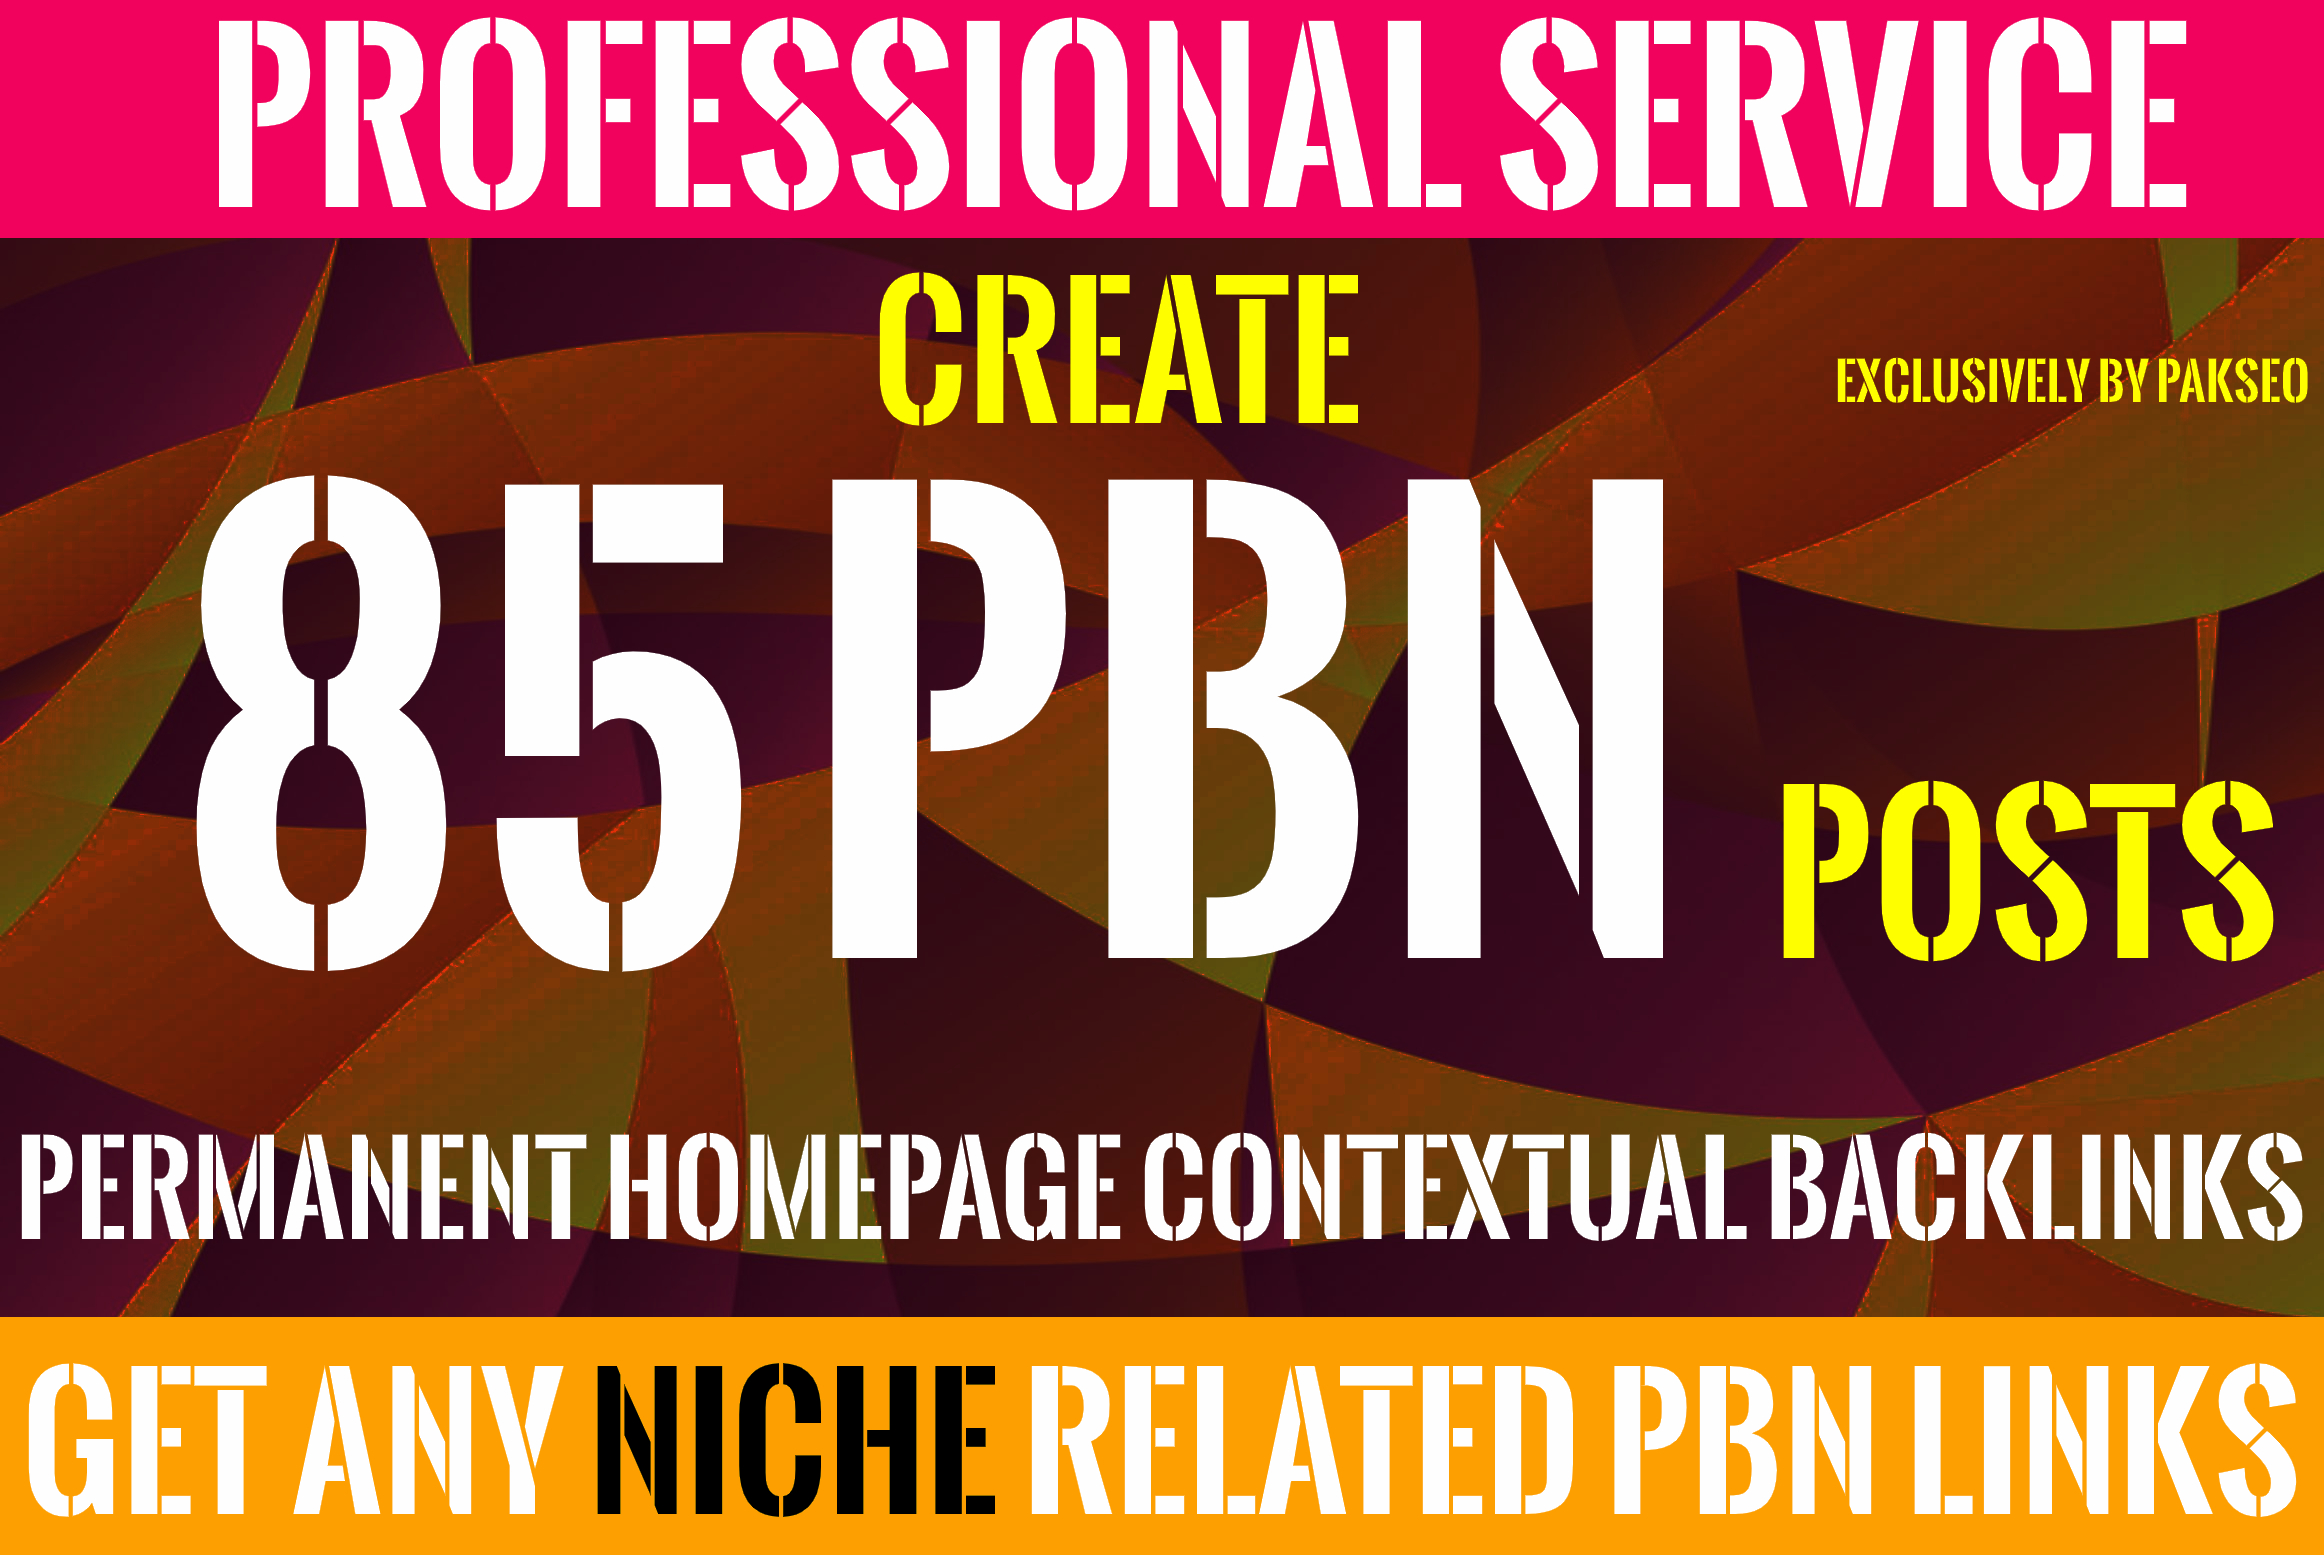 Create 85 PBN Homepage Permanent Contextual Backlinks